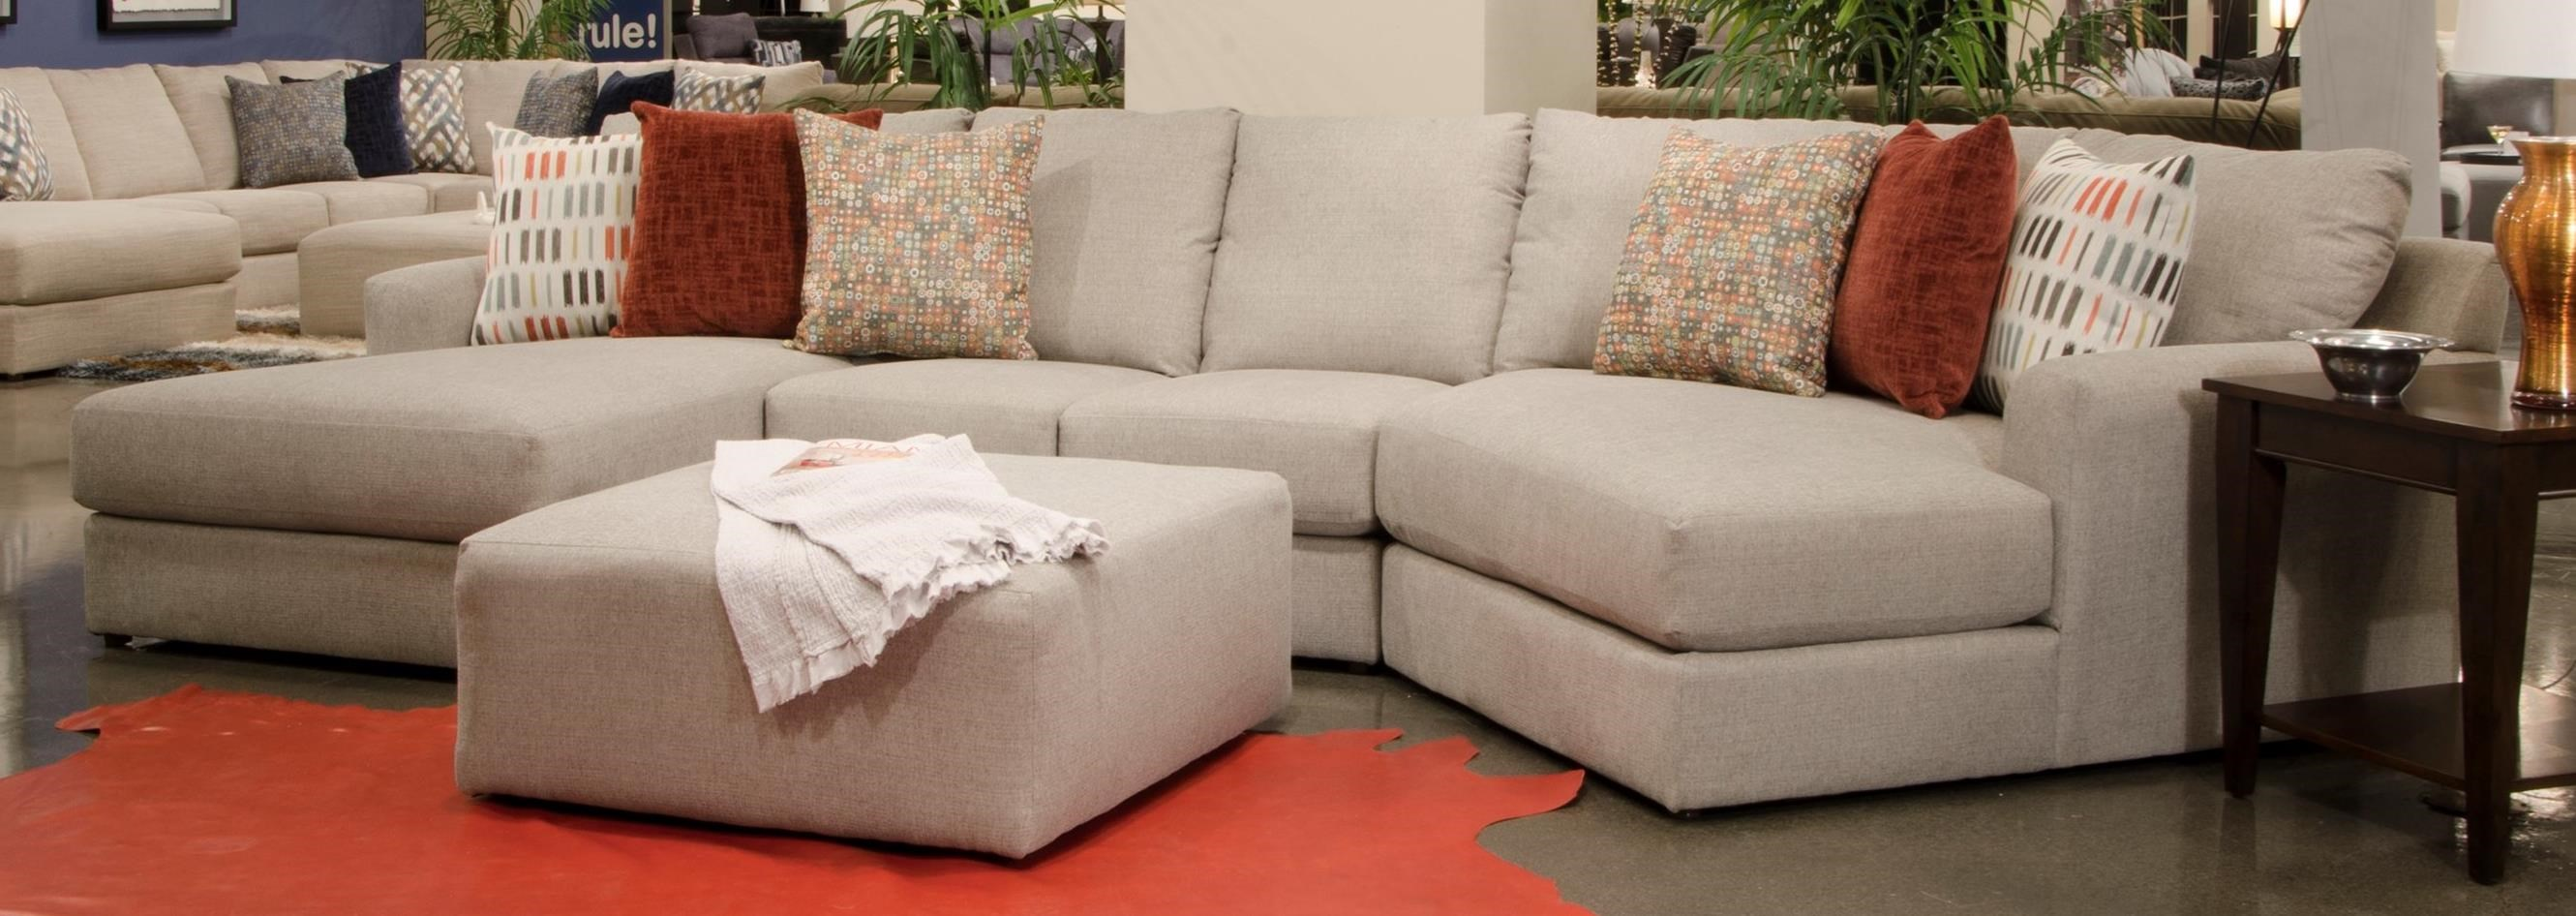 Laguna 3-Piece Sectional by Jackson Furniture at Northeast Factory Direct